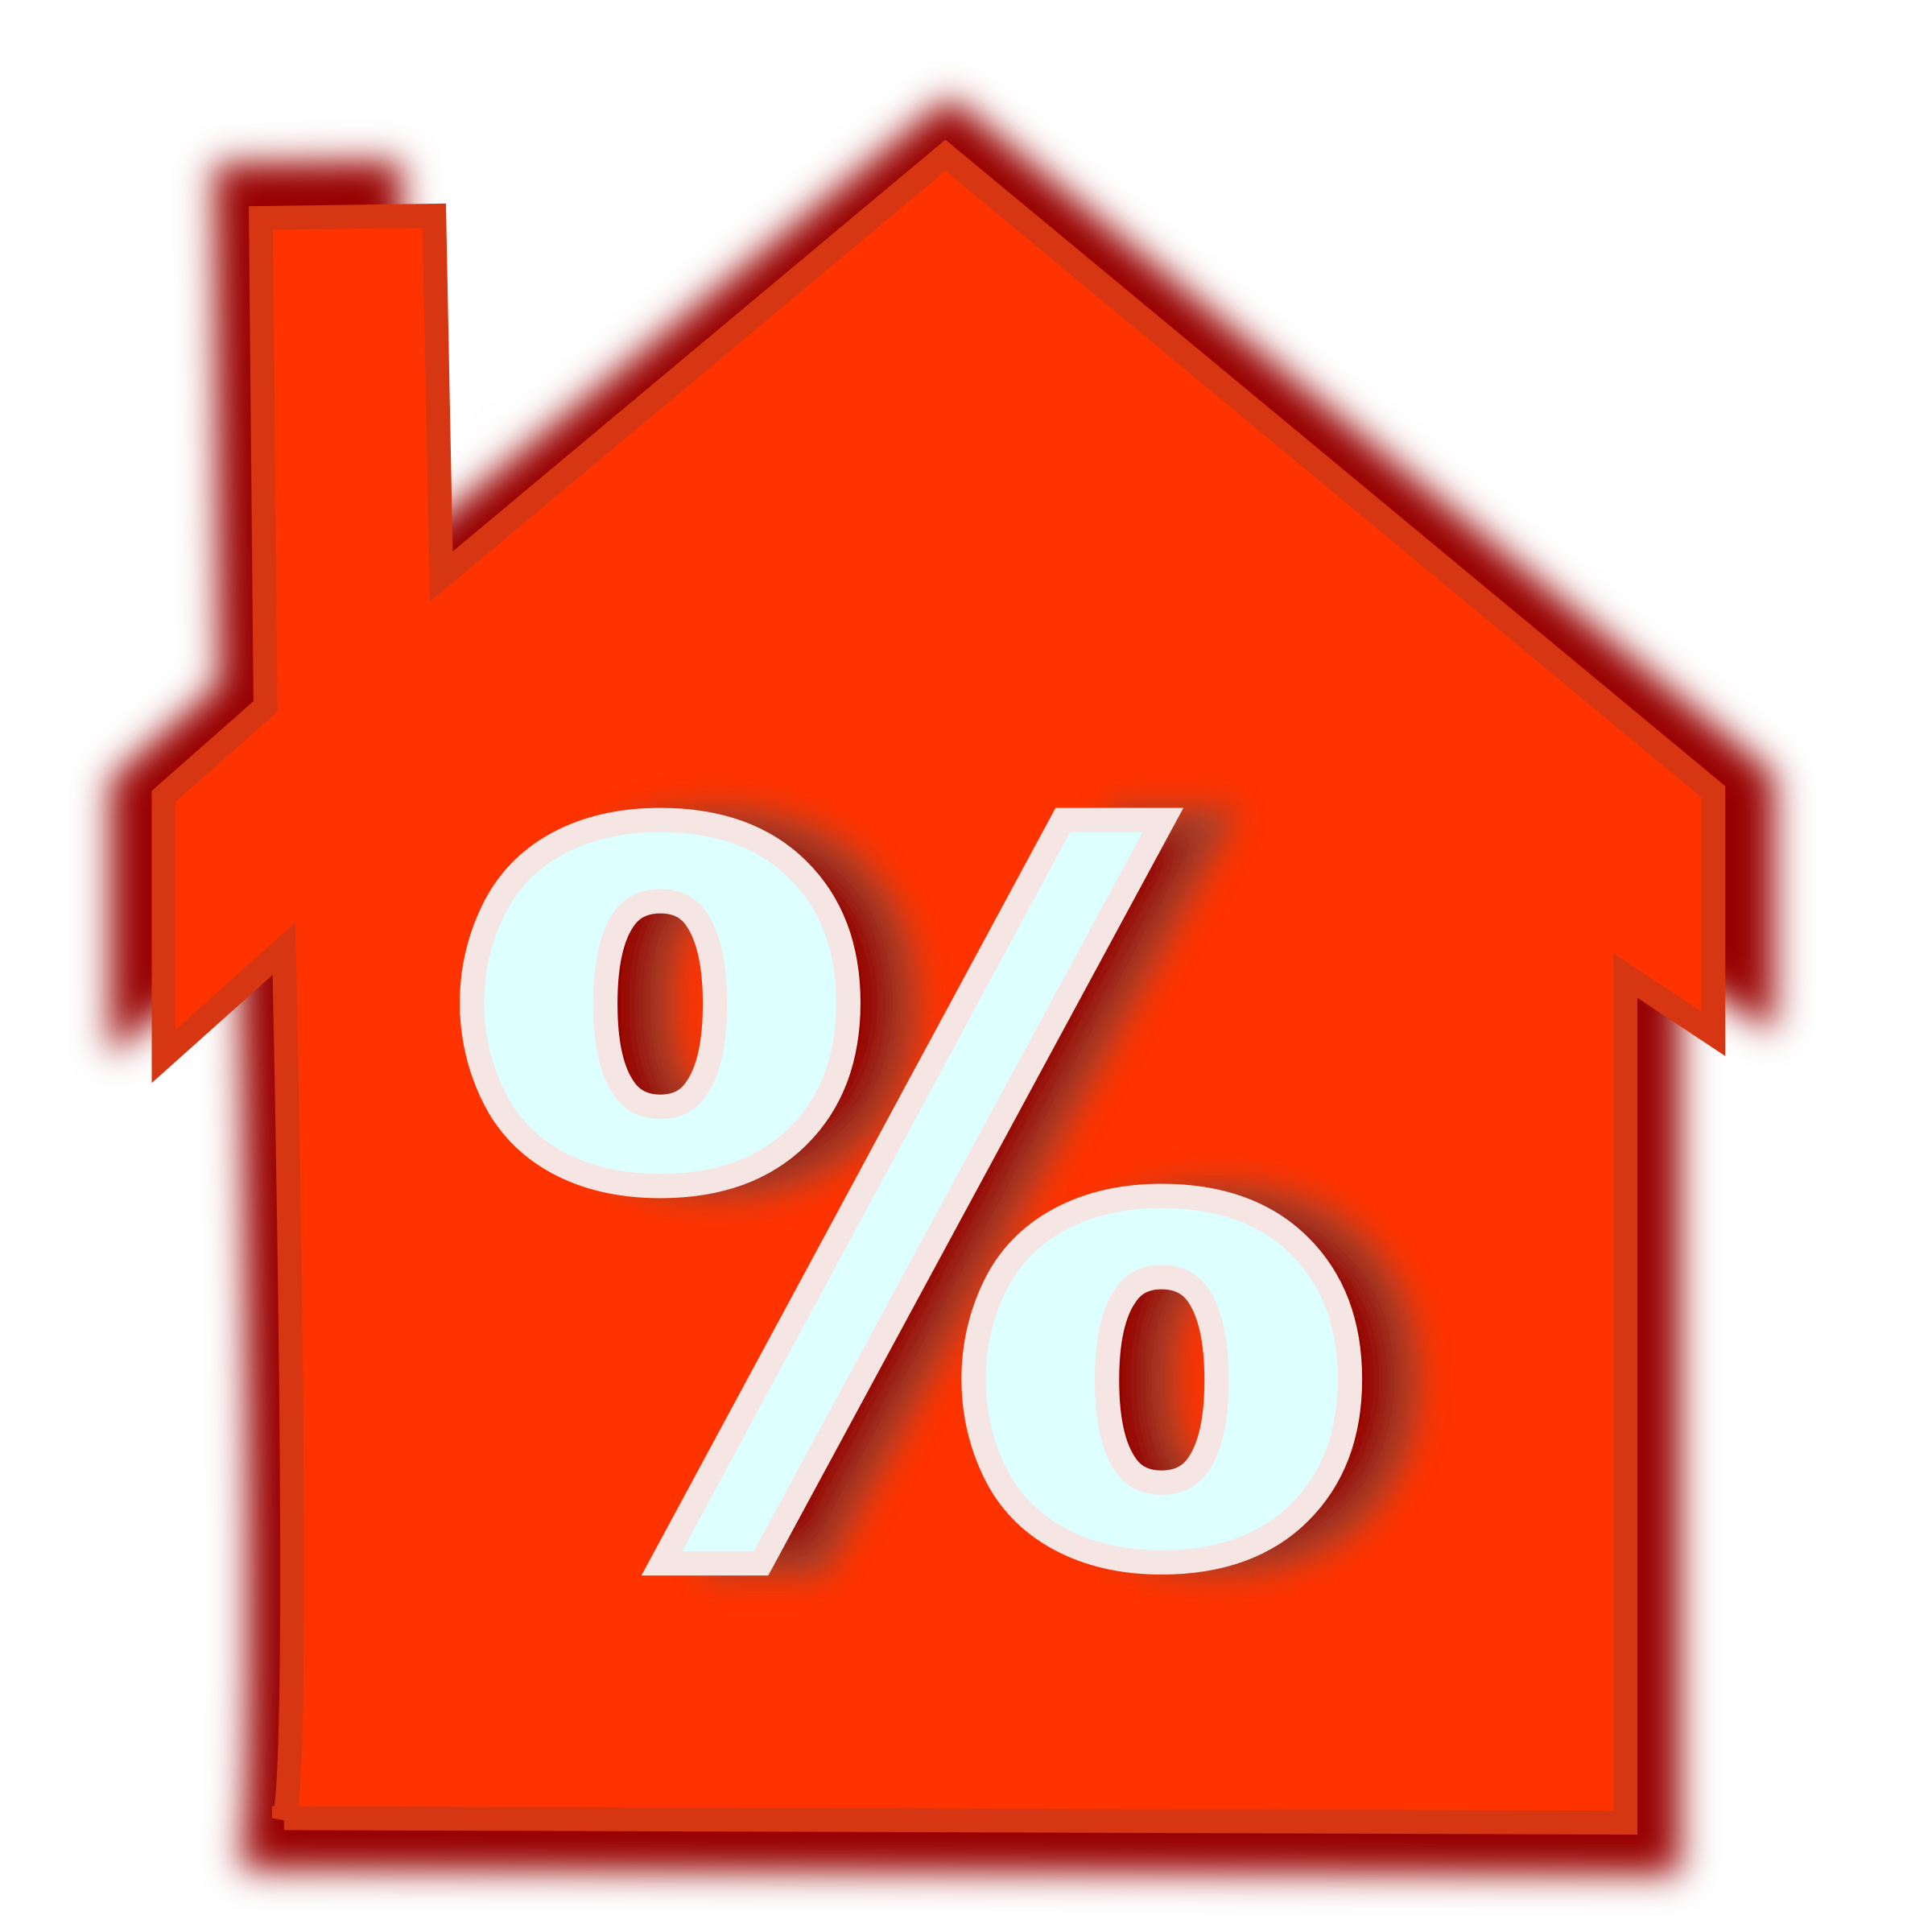 Newspaper clipart interest. Home loan rate icons